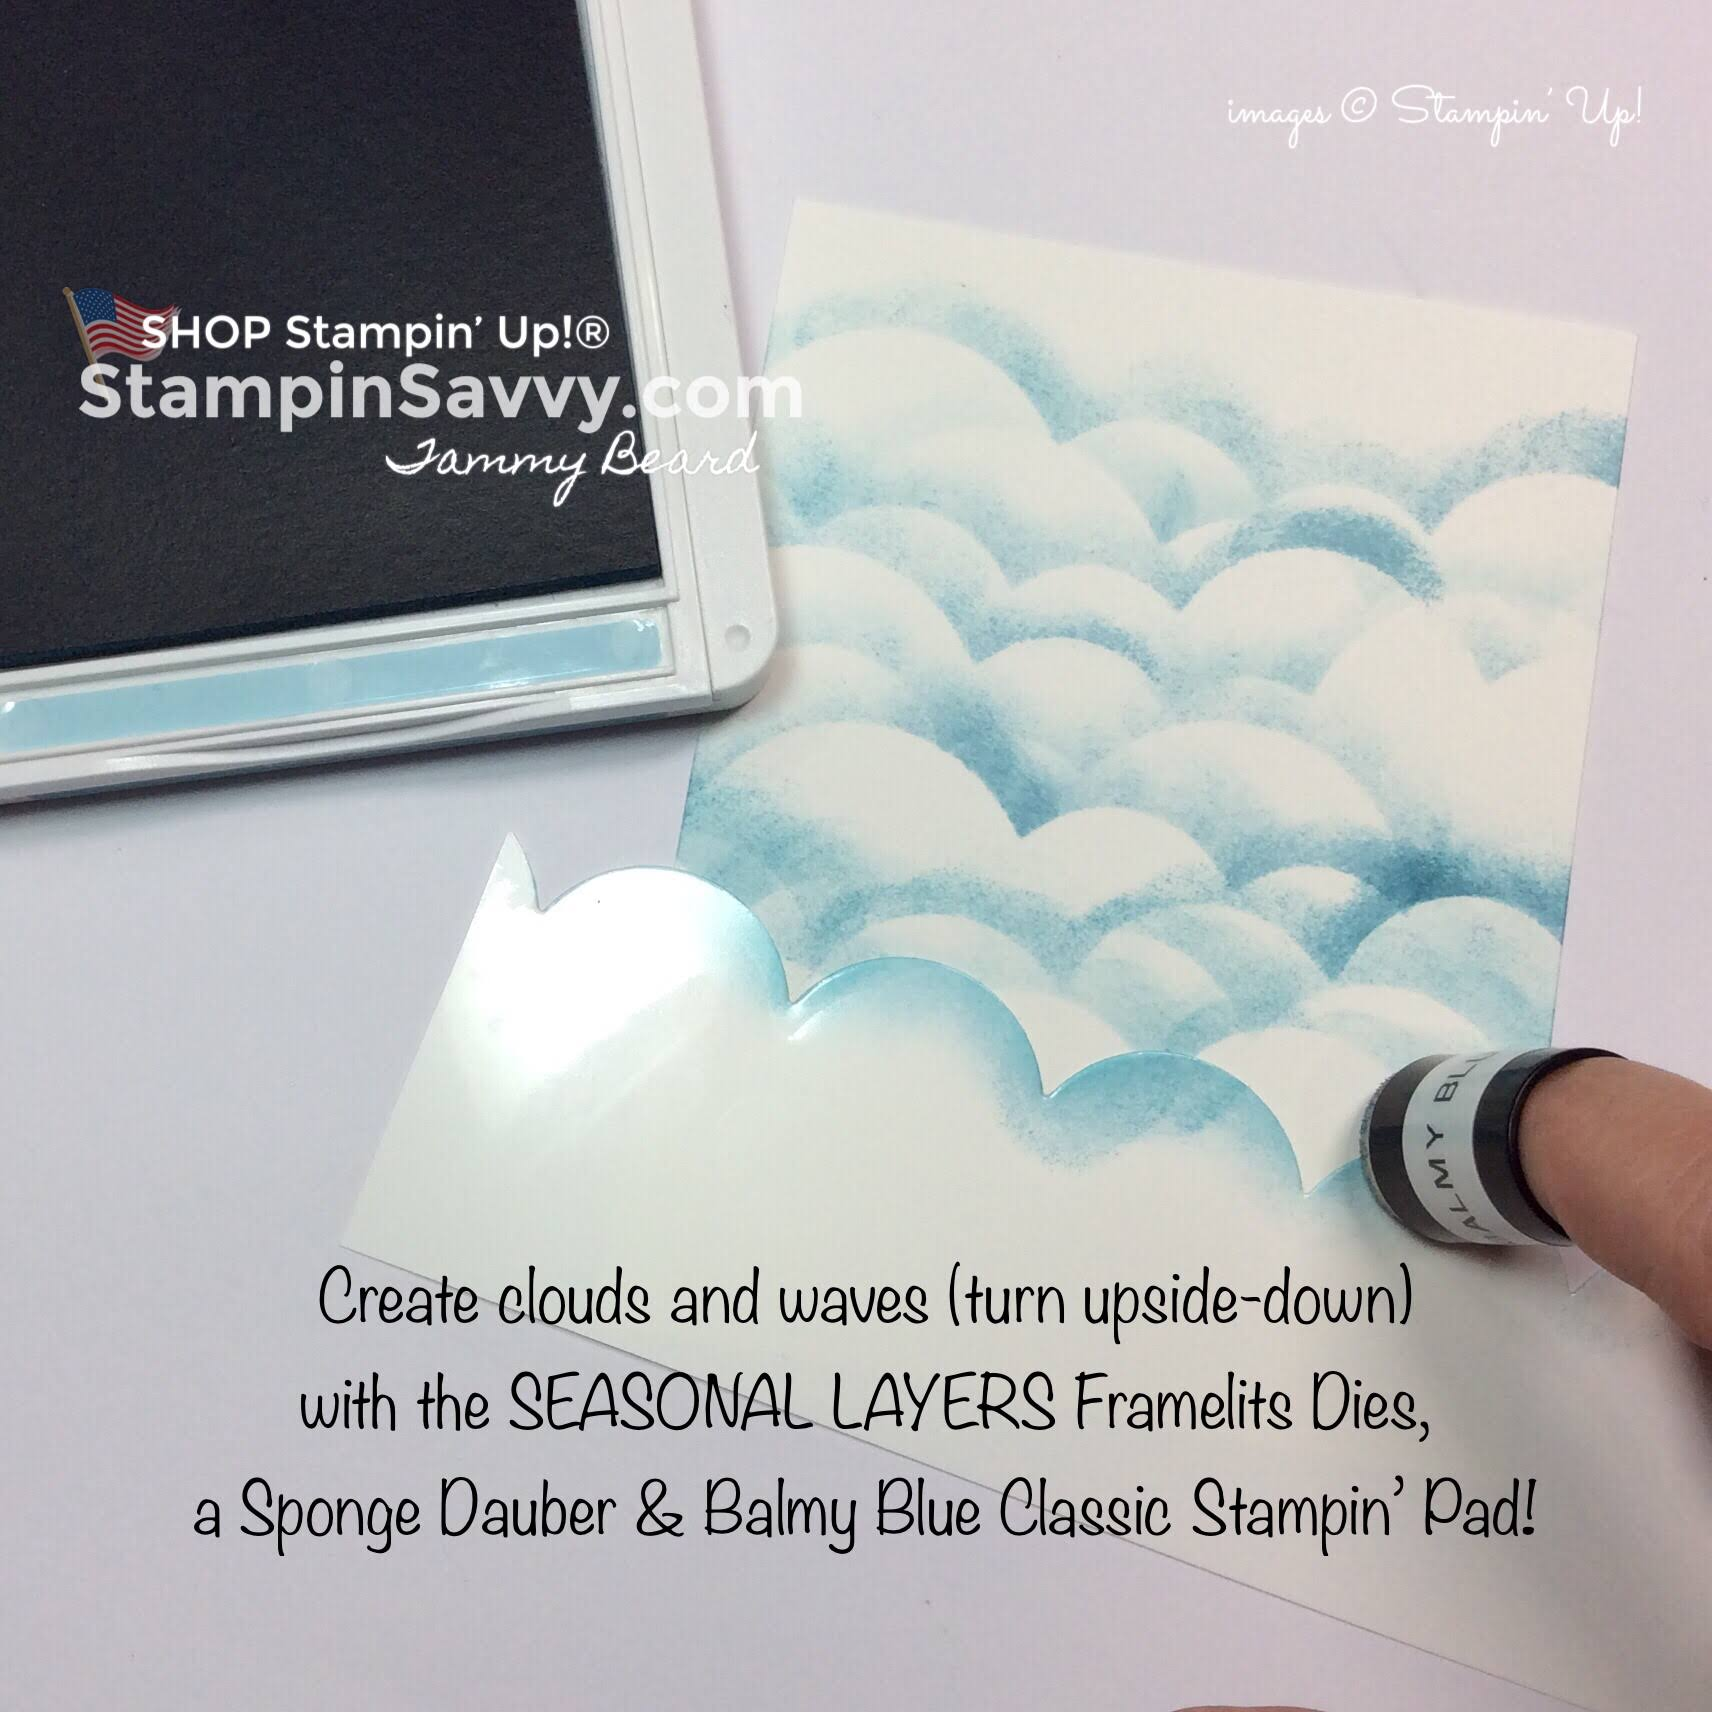 simple baby boy card, seasonal layers framelits dies, sponge daubers, stampin up, stampin savvy, stampinup, tammy beard